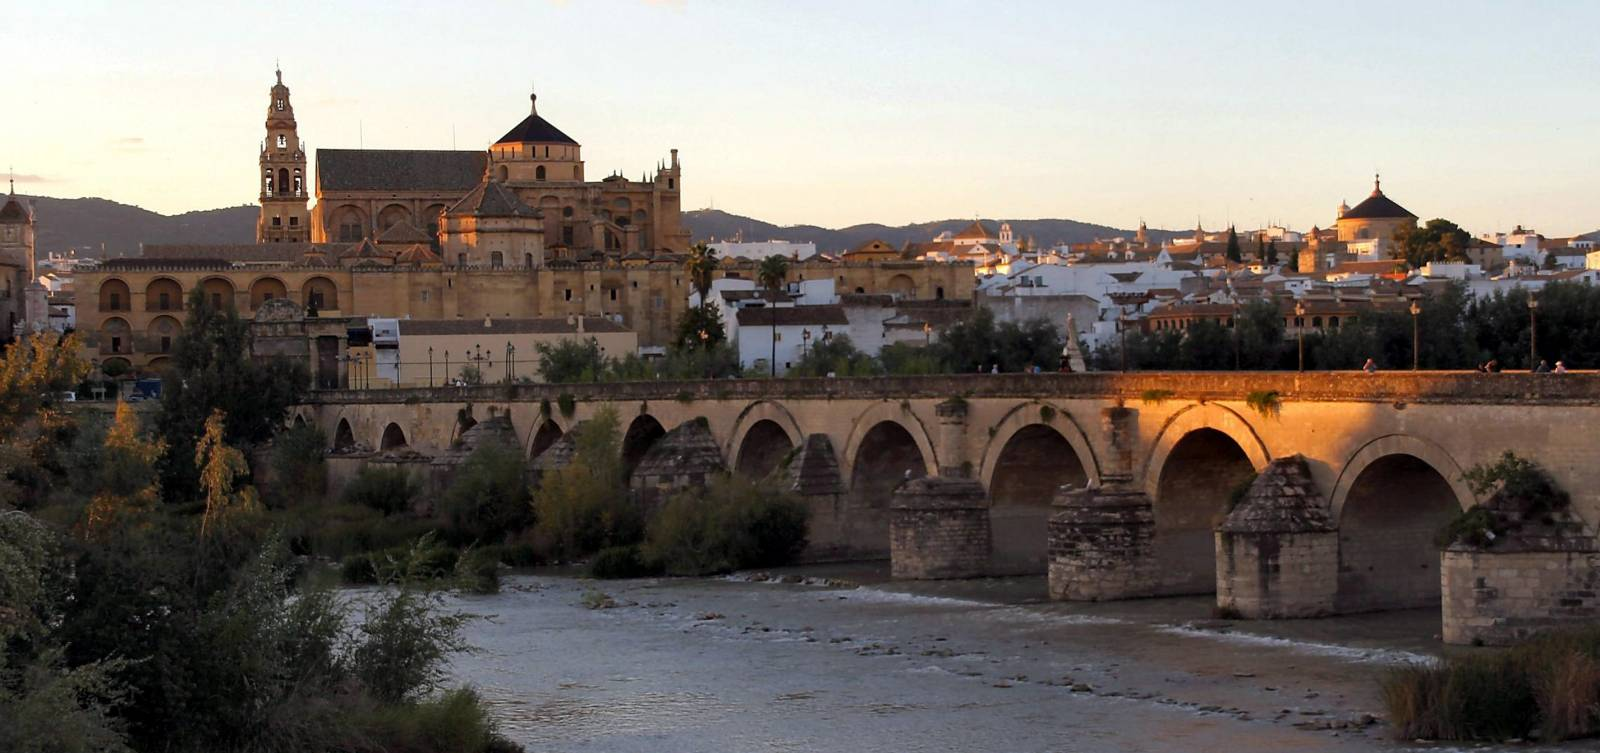 roman_bridge_cordoba.jpg